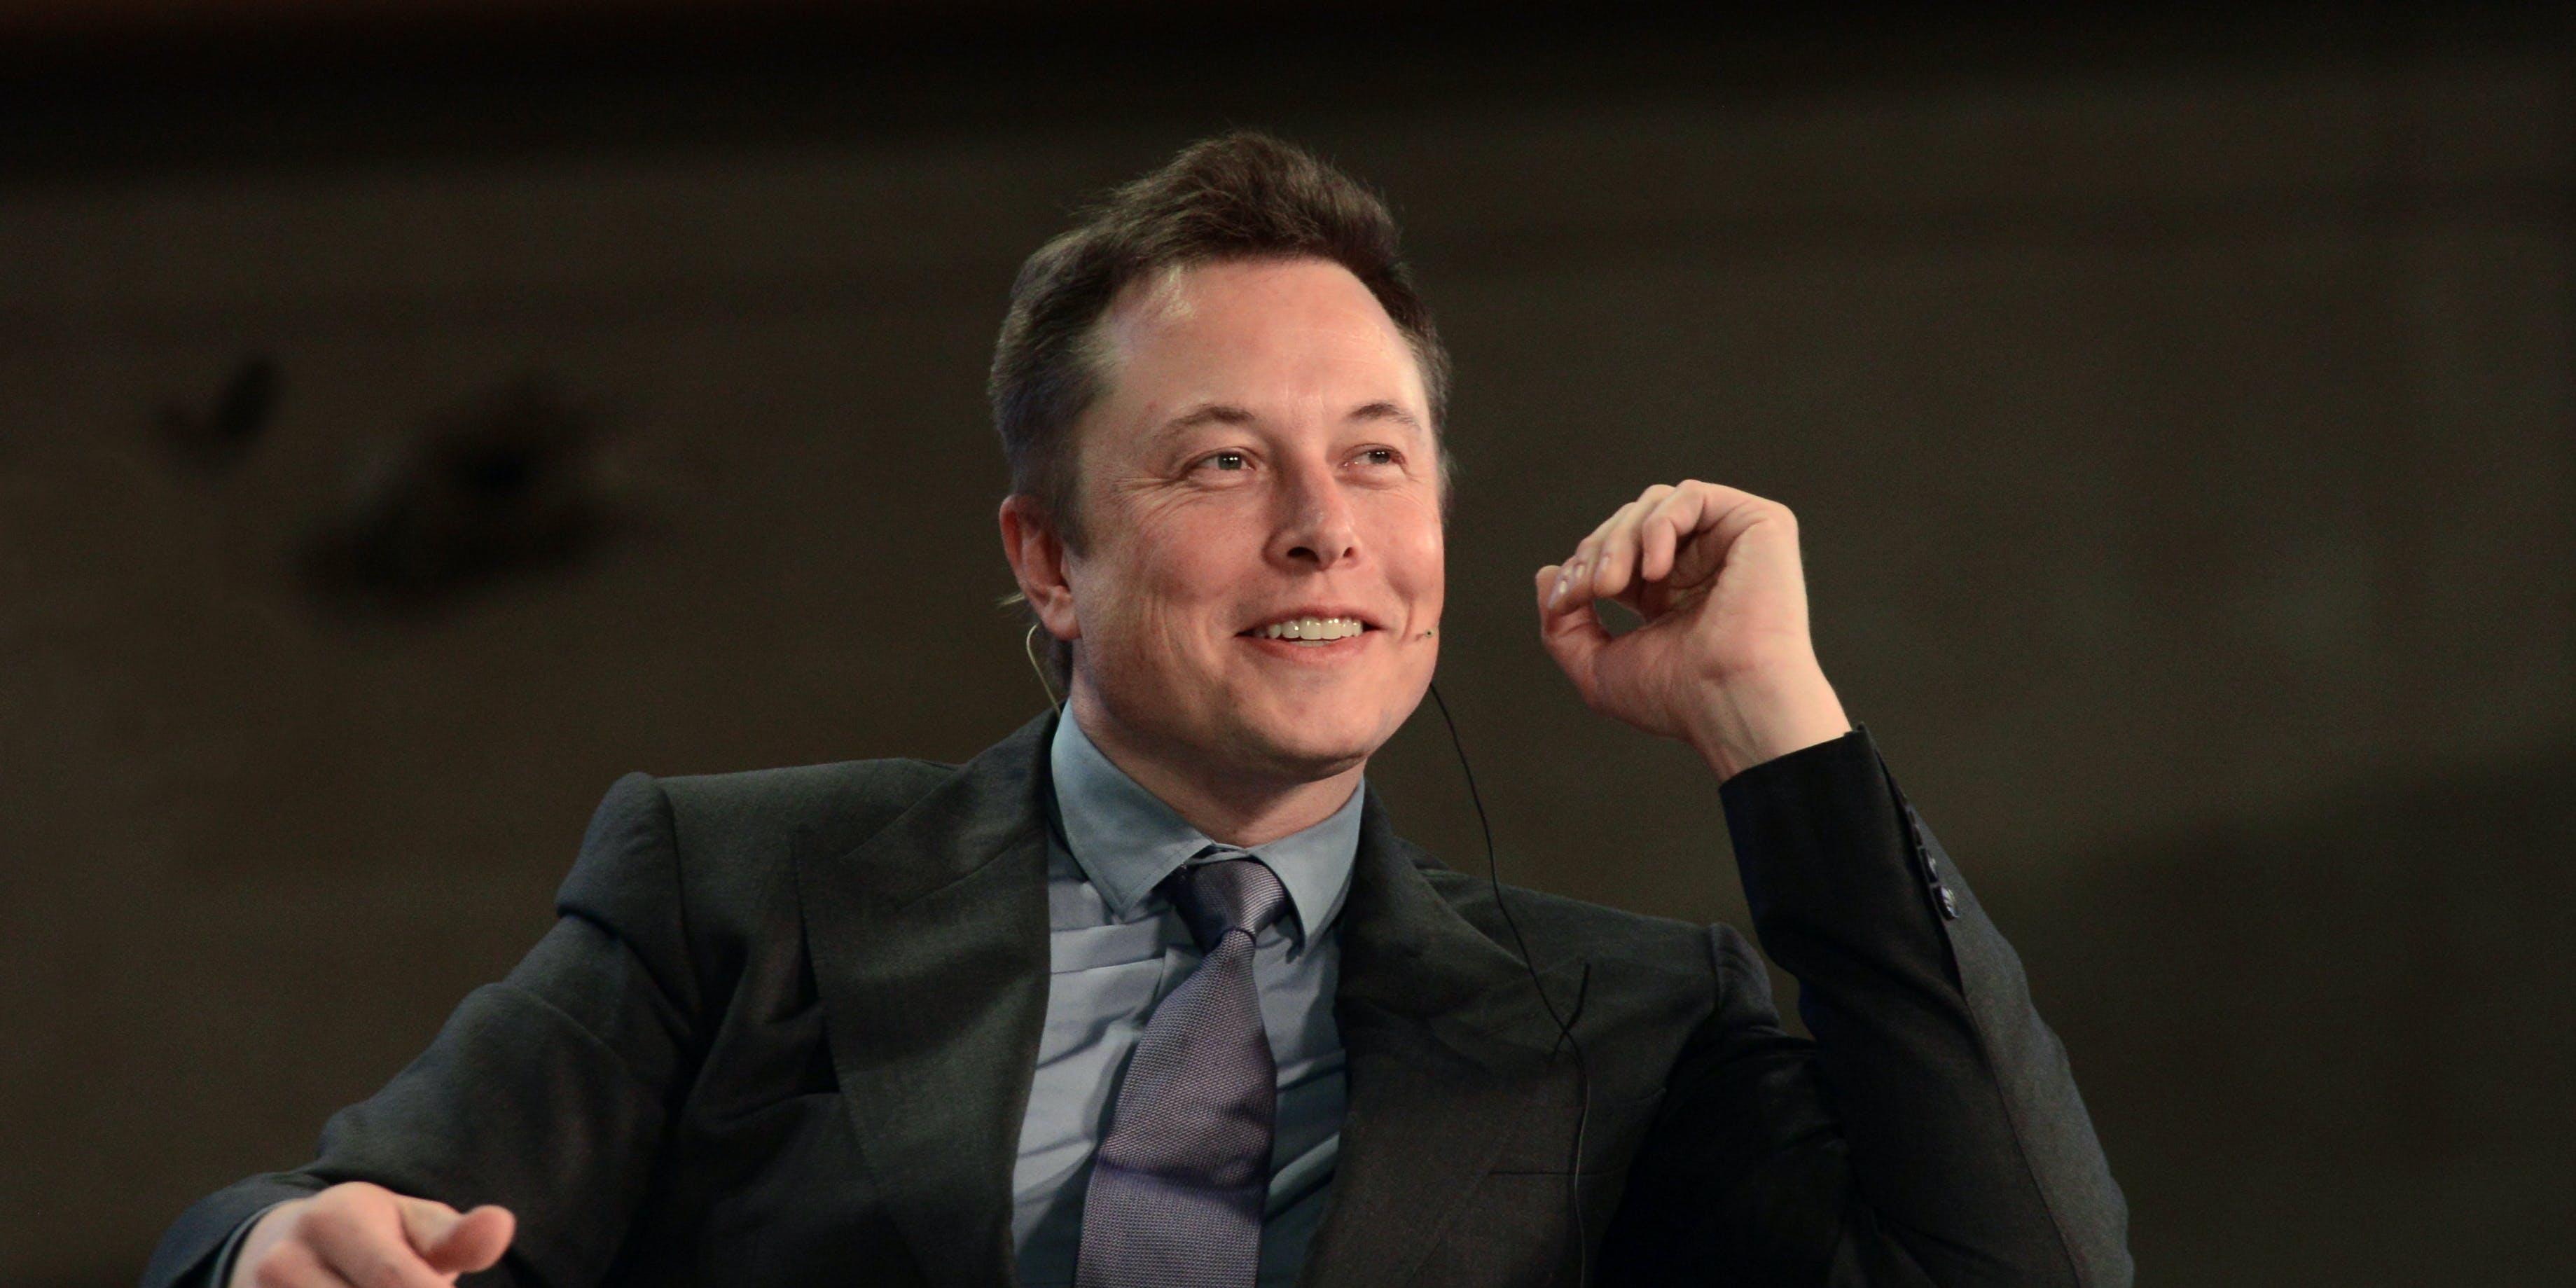 """BEIJING, CHINA - APRIL 21: CEO of Tesla Motors Elon Musk attends a television show """"Dialogue"""" taping at Zhongshan Park on April 21, 2014 in Beijing, China. (Photo by VCG via Getty Images)"""